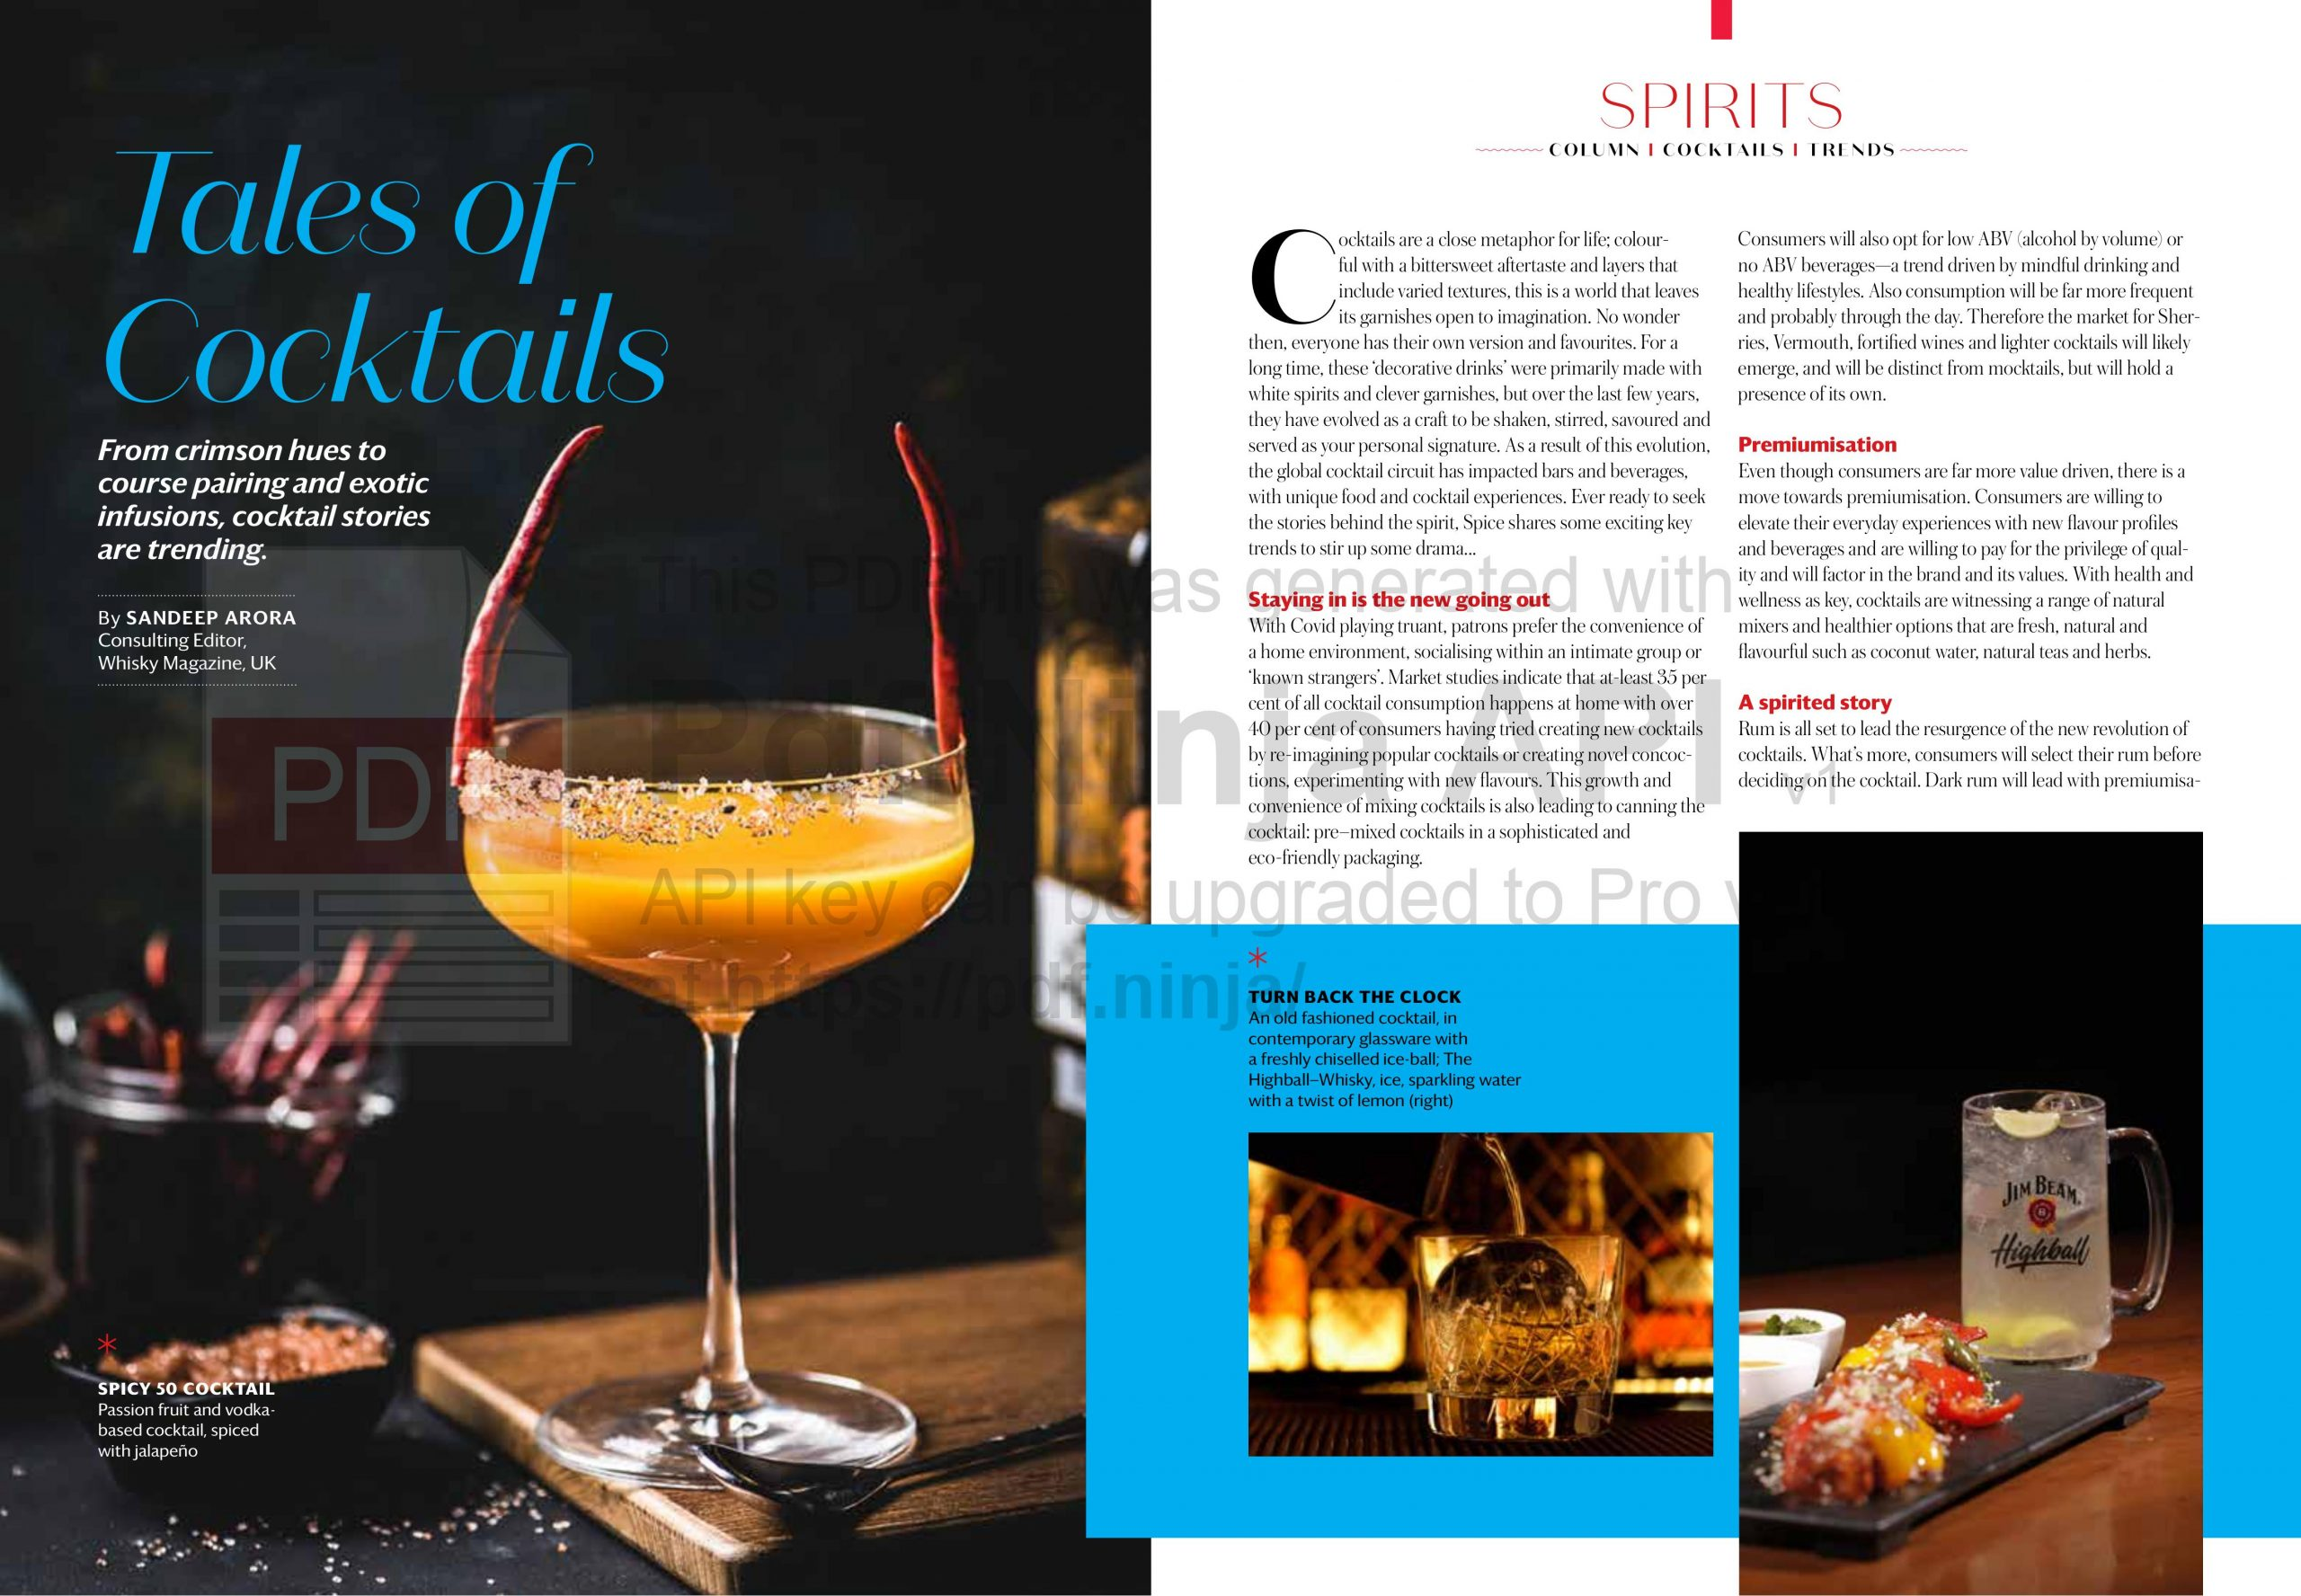 TALES OF COCKTAILS